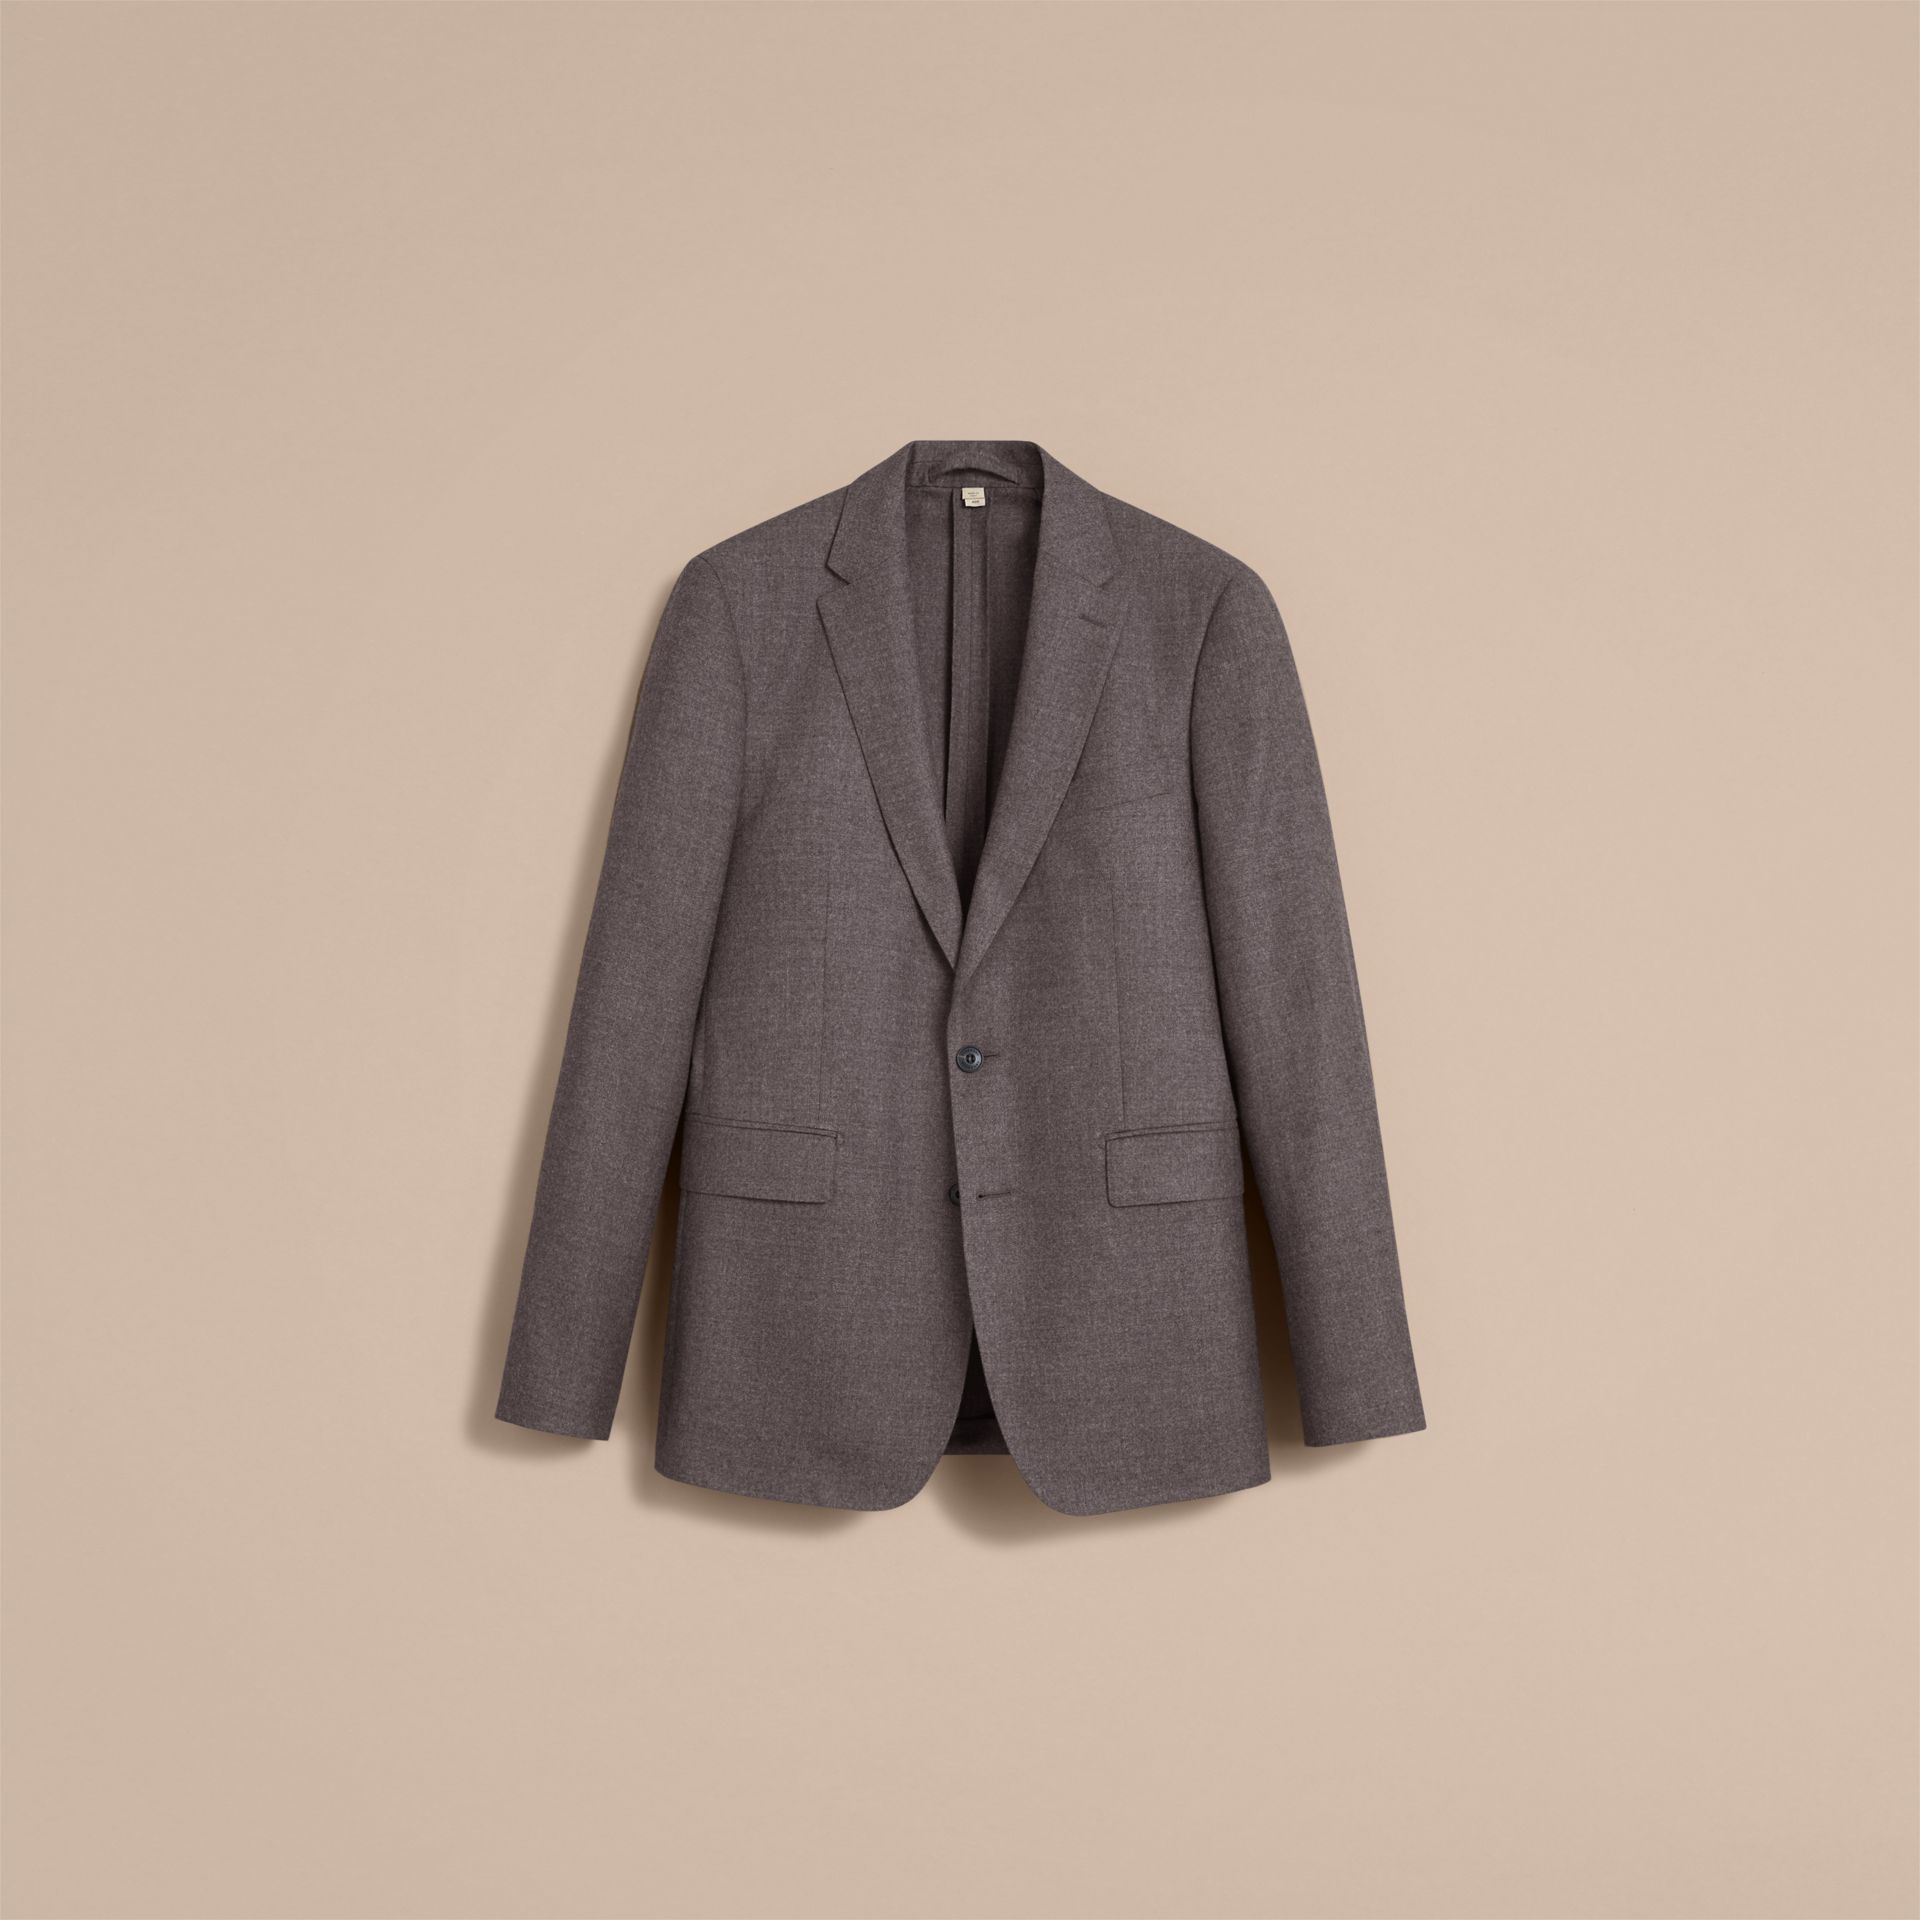 Soho Fit Wool Flannel Suit in Dark Charcoal Melange - Men | Burberry - gallery image 4